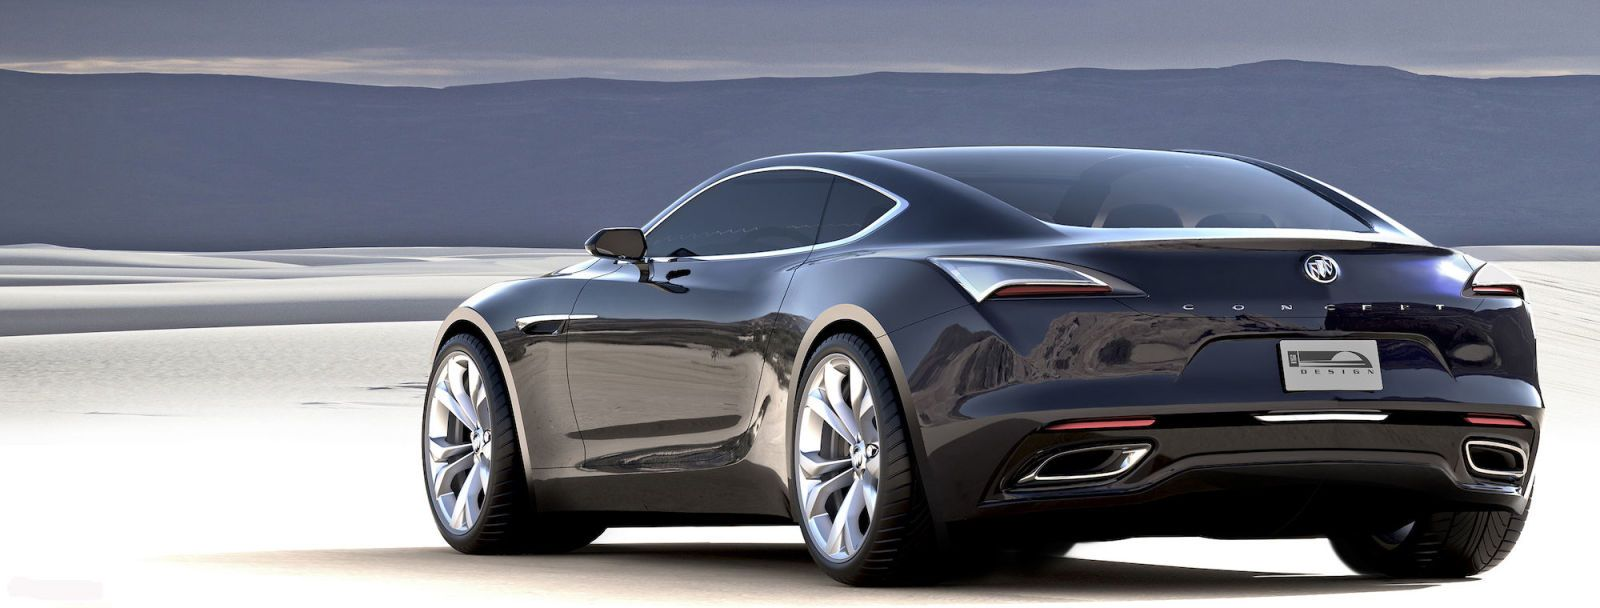 Buick concept coupe